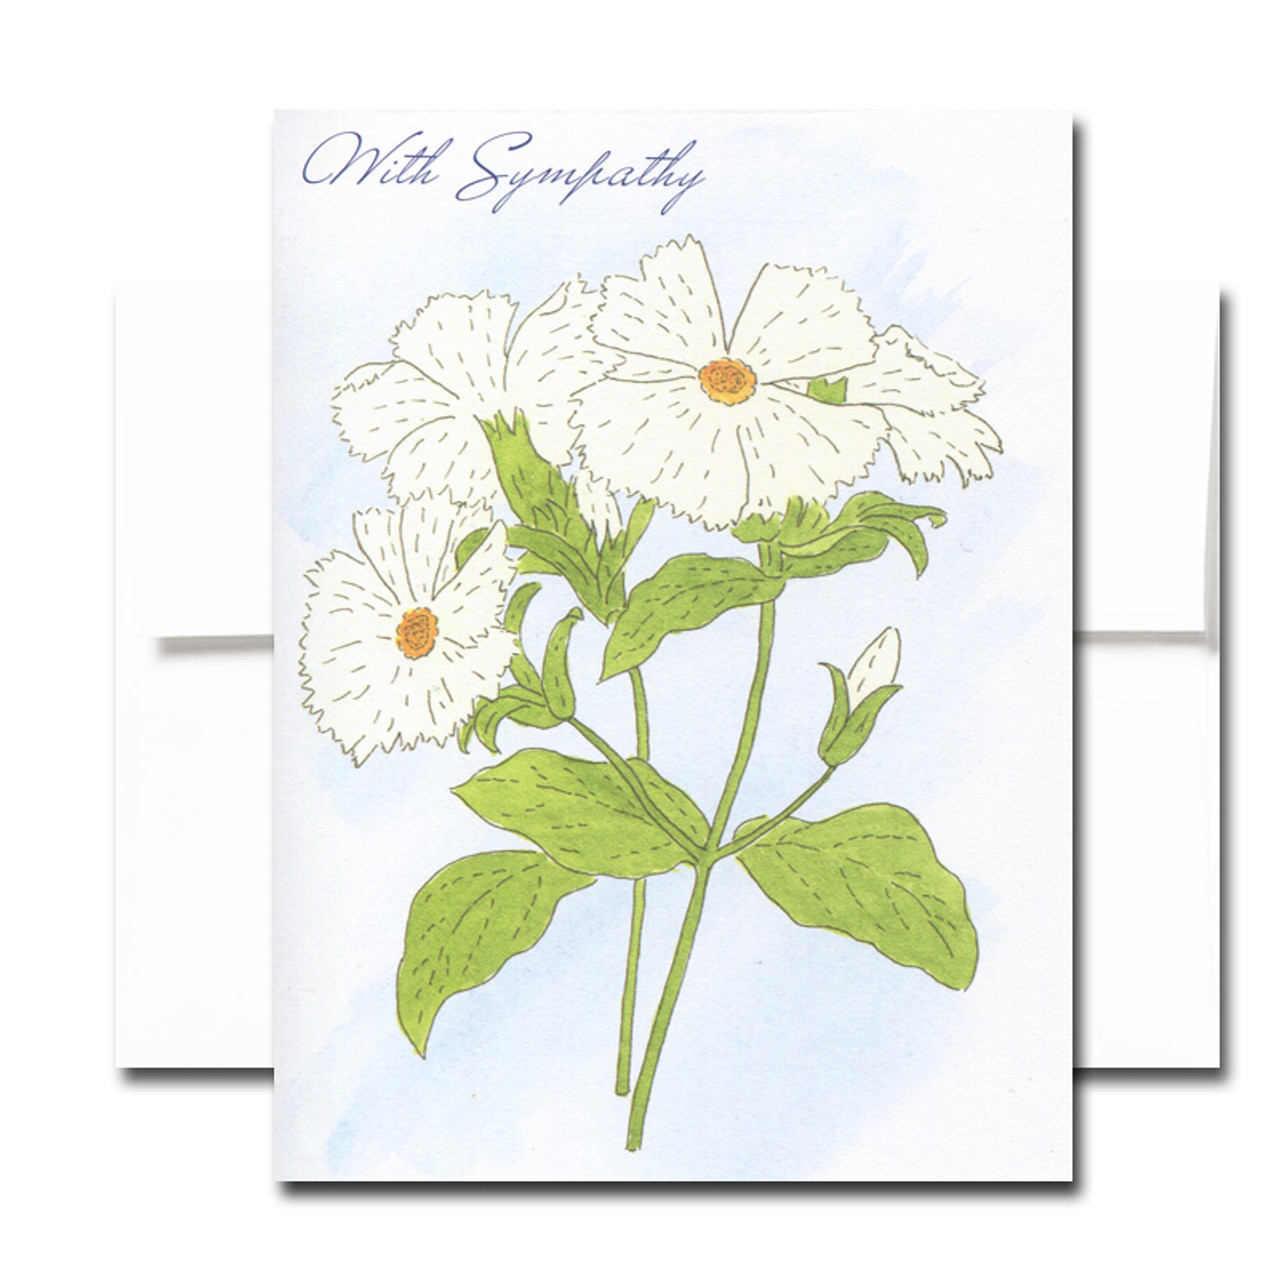 Sympathy Card: Campion. Cover has a hand-painted watercolor illustration and the words With Sympathy